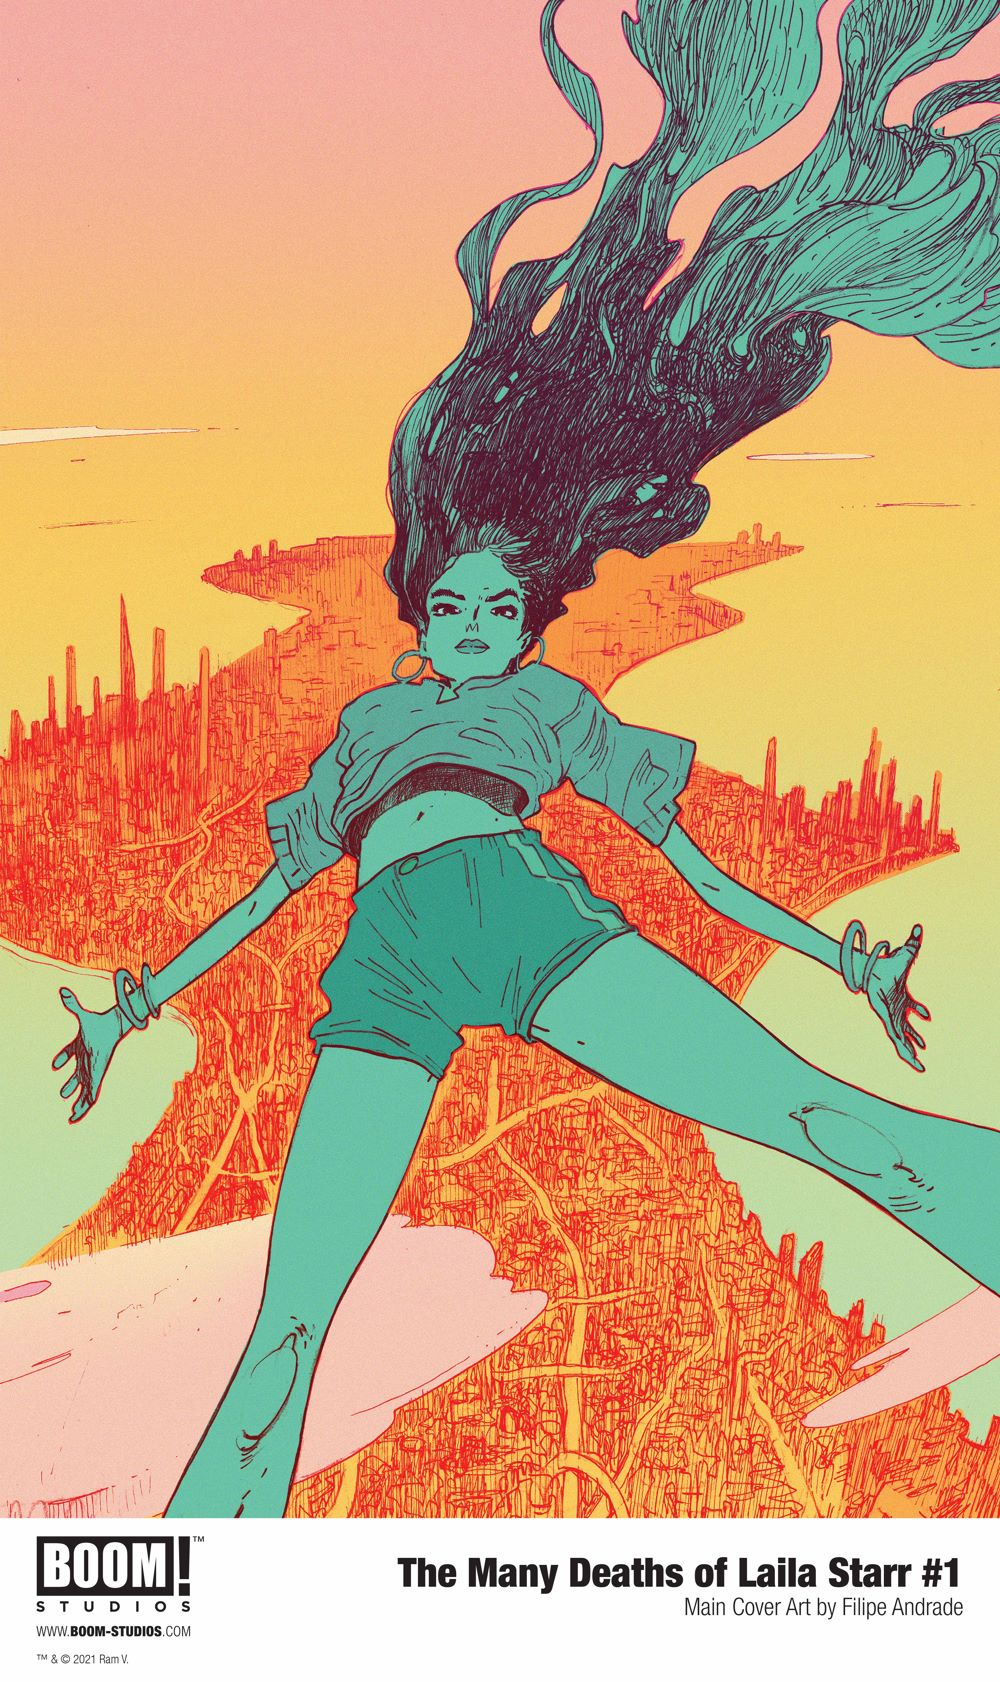 ManyDeathsLailaStarr_001_Cover_Main_PROMO-1 First Look at BOOM! Studios' THE MANY DEATHS OF LAILA STARR #1